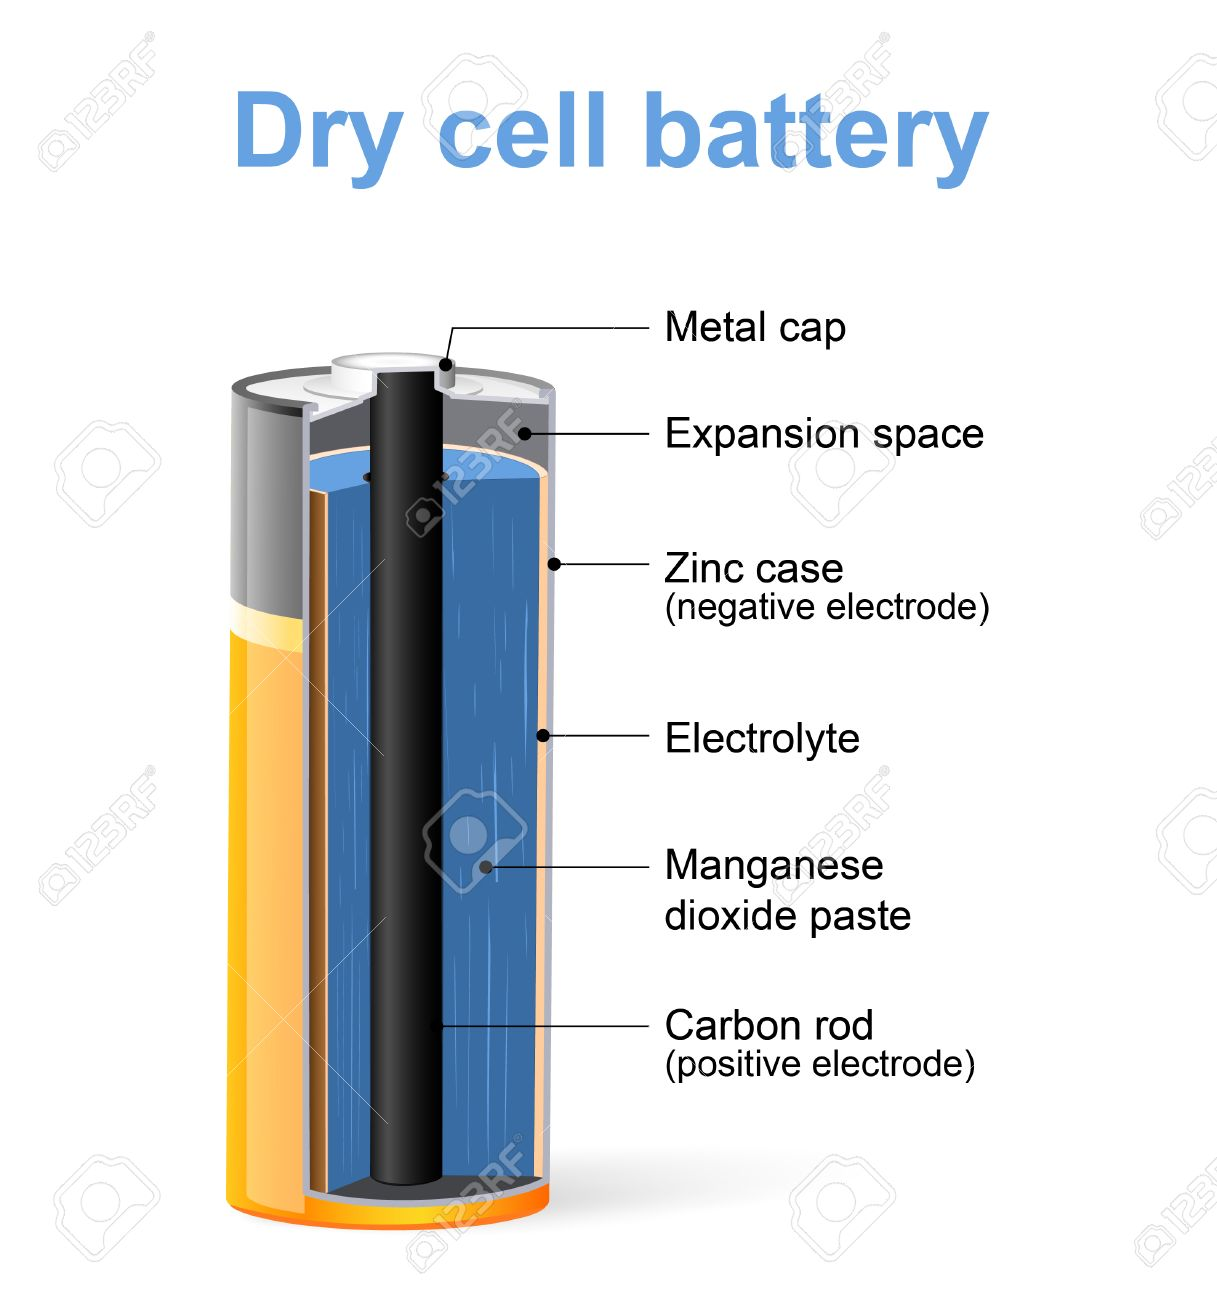 Parts of a dry cell battery vector diagram royalty free cliparts parts of a dry cell battery vector diagram stock vector 63923671 pooptronica